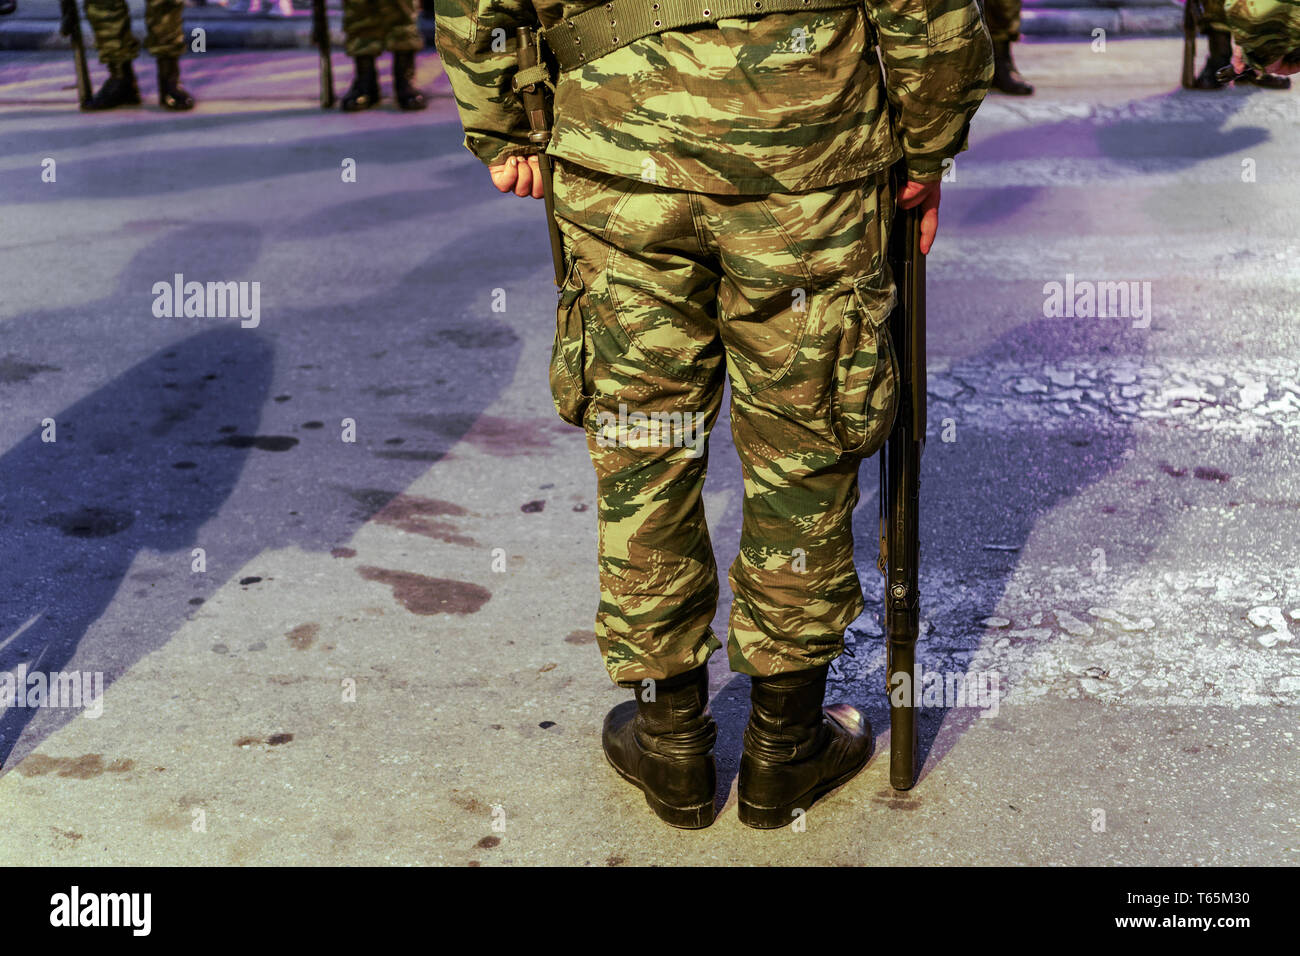 Silhouette of Hellenic Armed forces male standing still. Greek Army soldier in a Camouflage Pattern combat uniform, holding a G3A4 rifle. - Stock Image